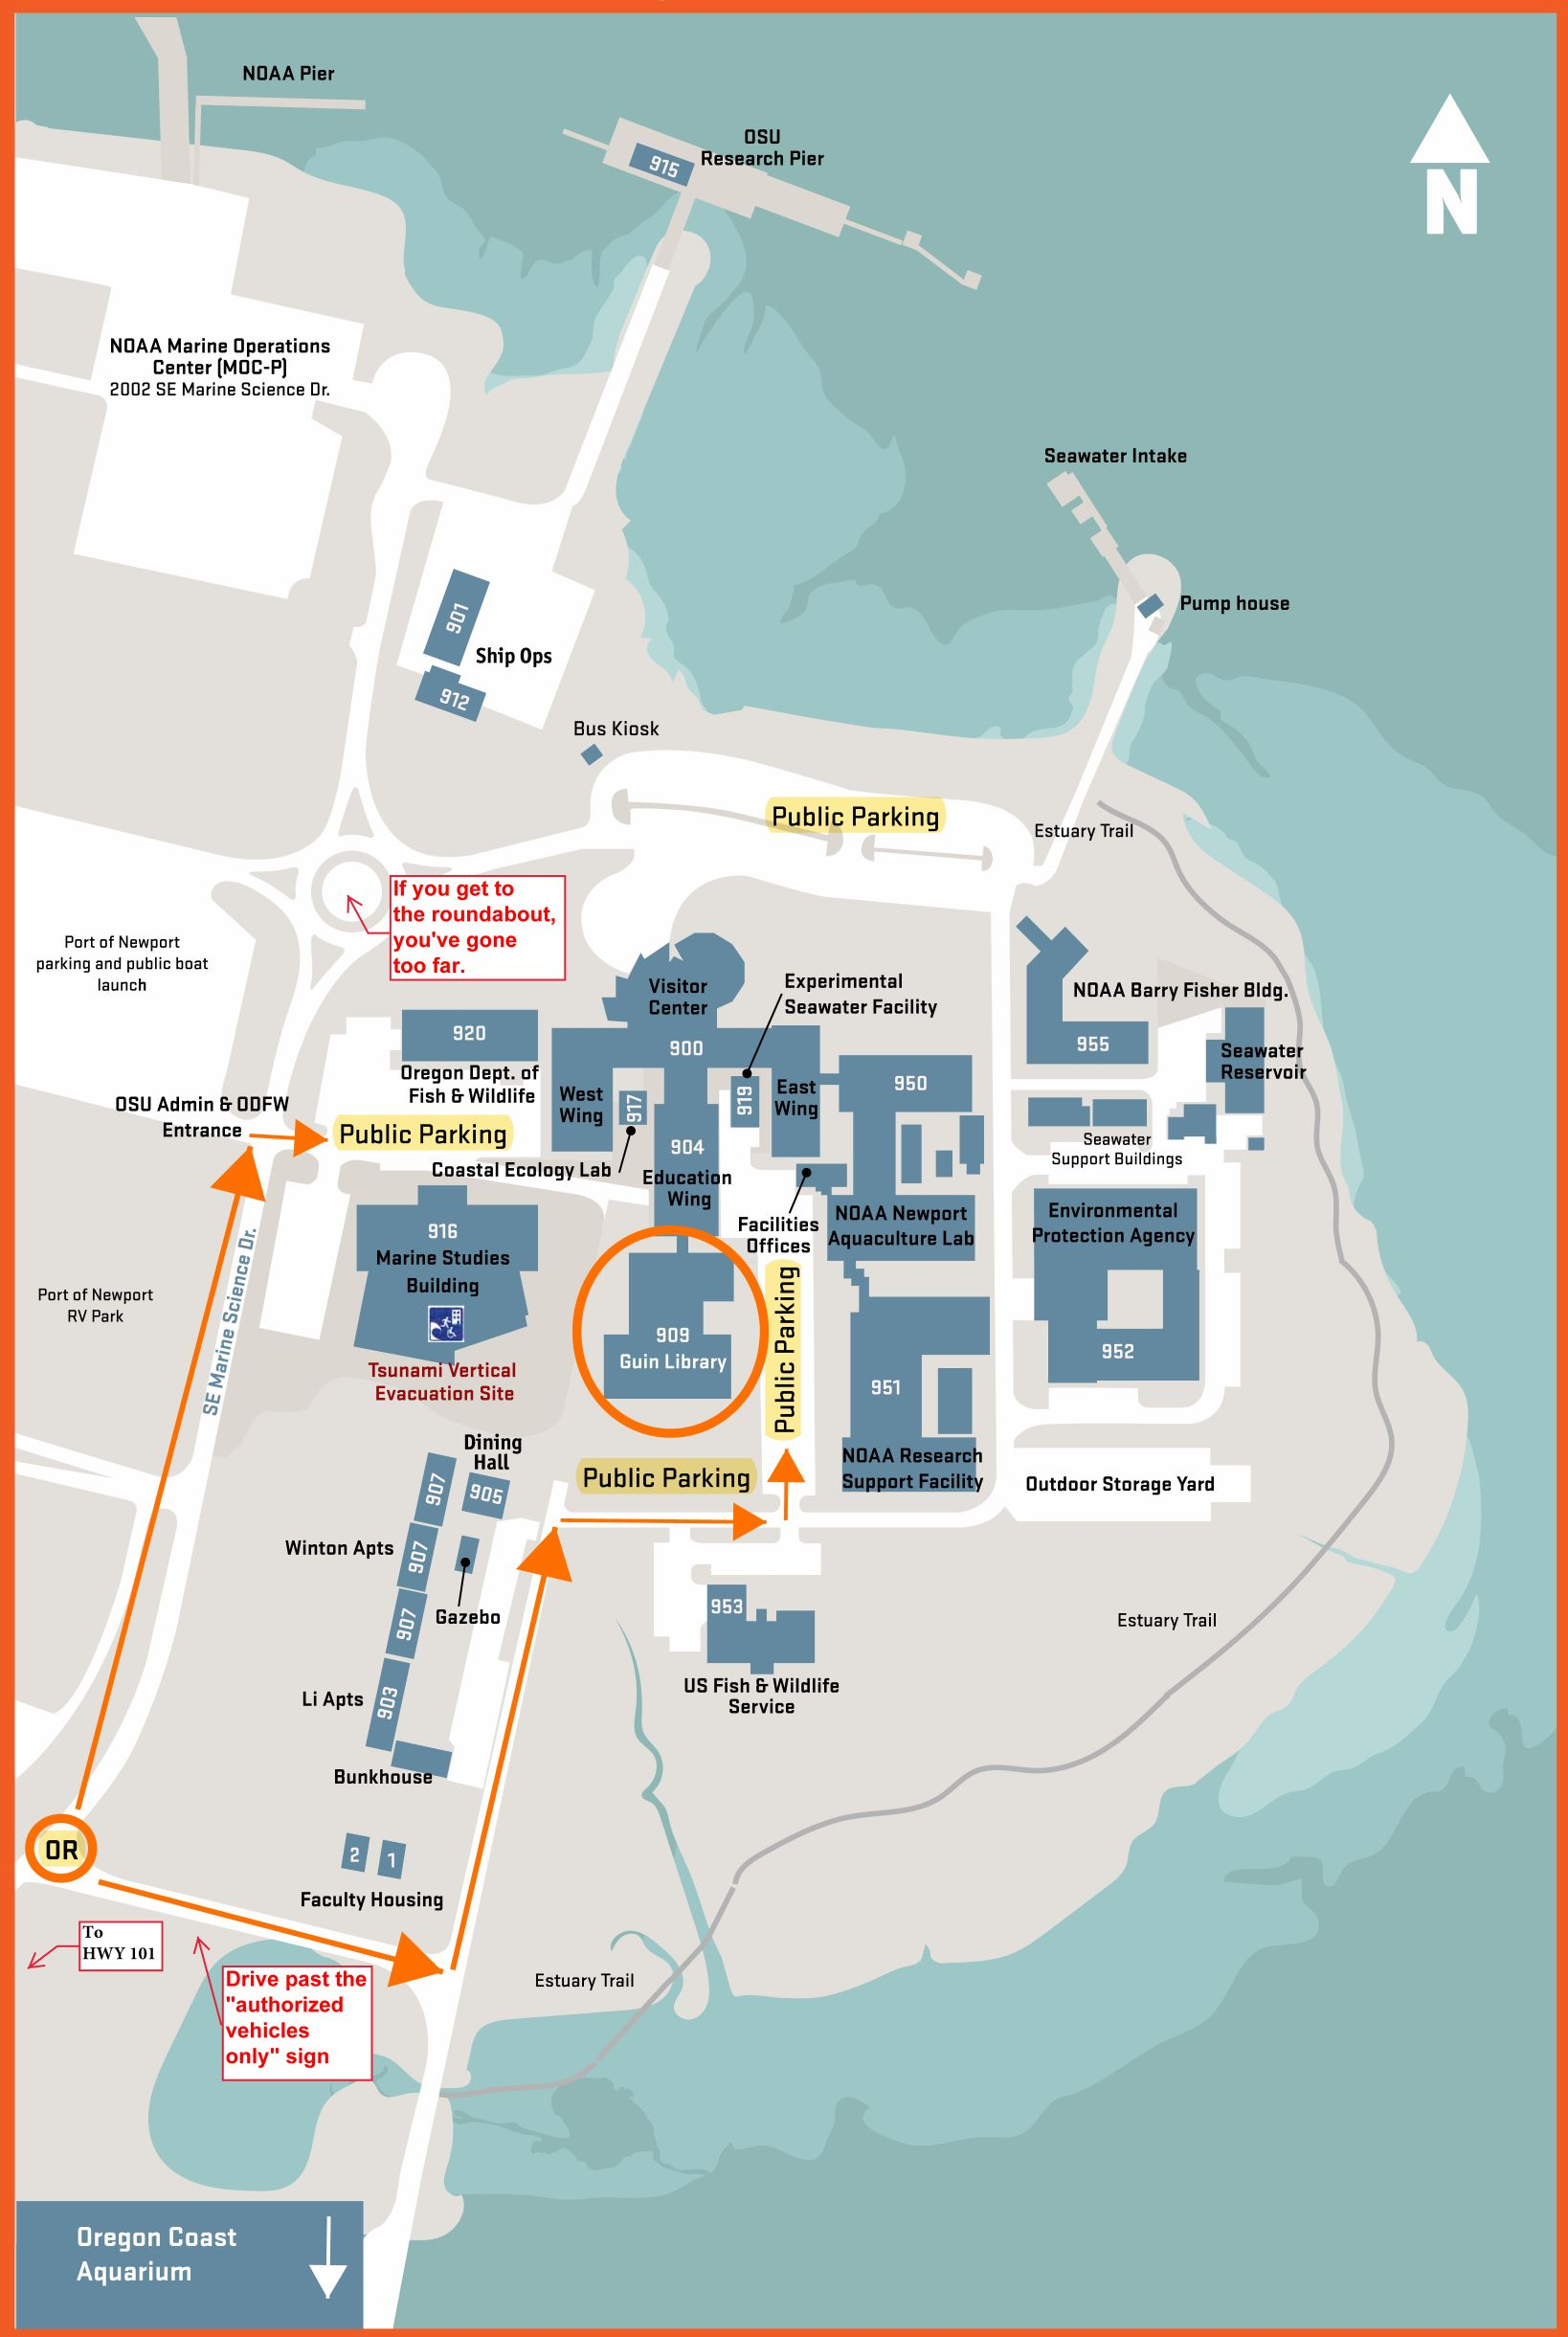 Hatfield Marine Science Center - Directions to Guin Library